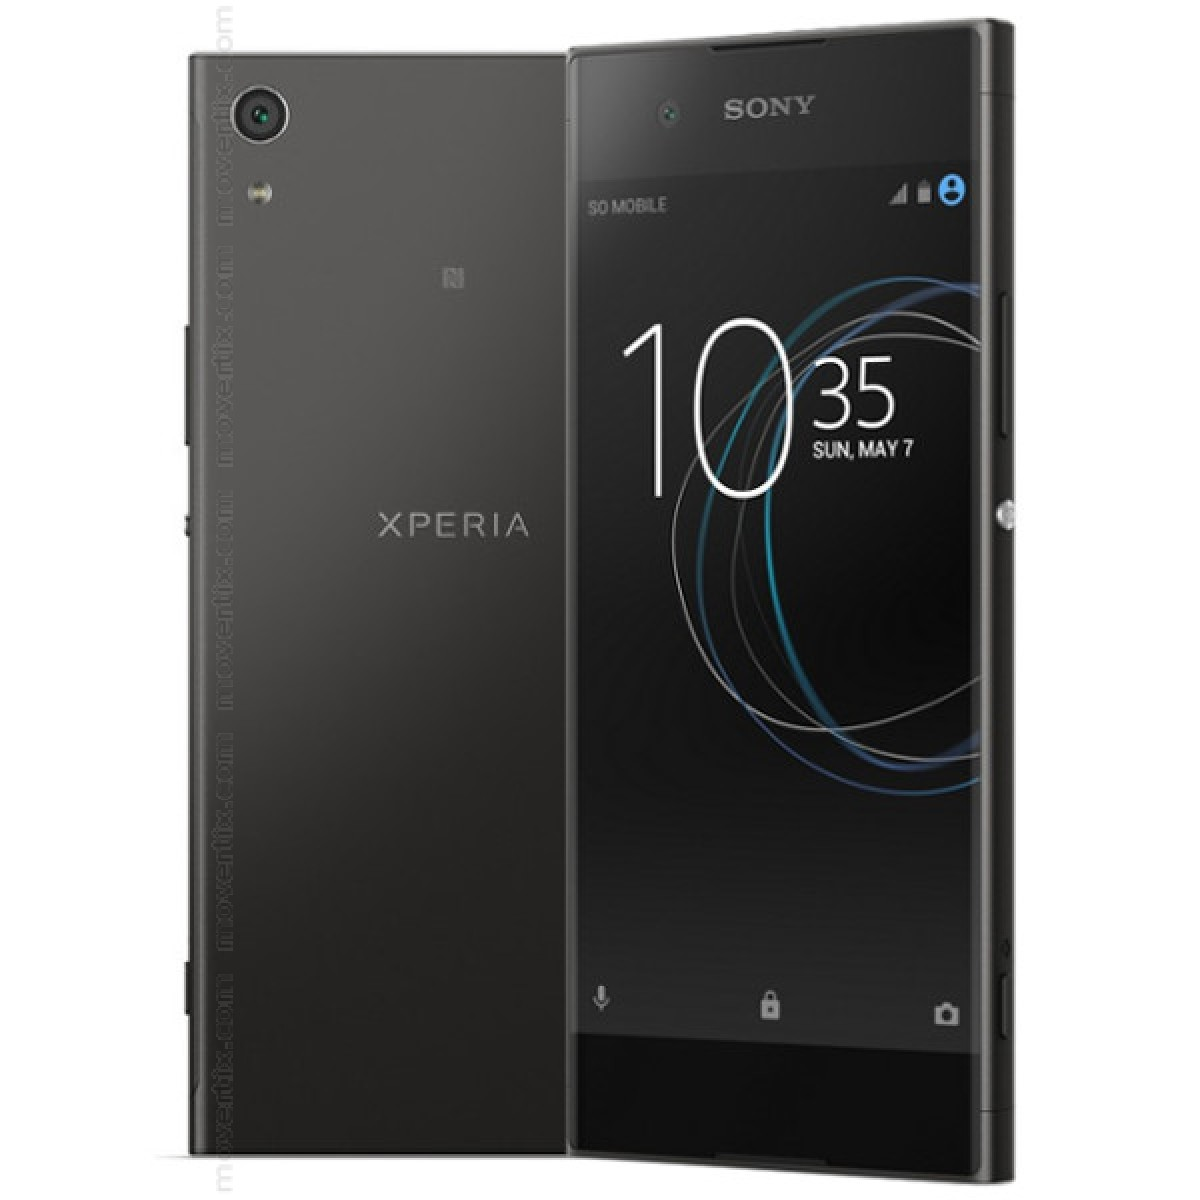 sony xperia xa1 noir g3121 7311271578956 movertix t l phones mobiles et smartphones. Black Bedroom Furniture Sets. Home Design Ideas